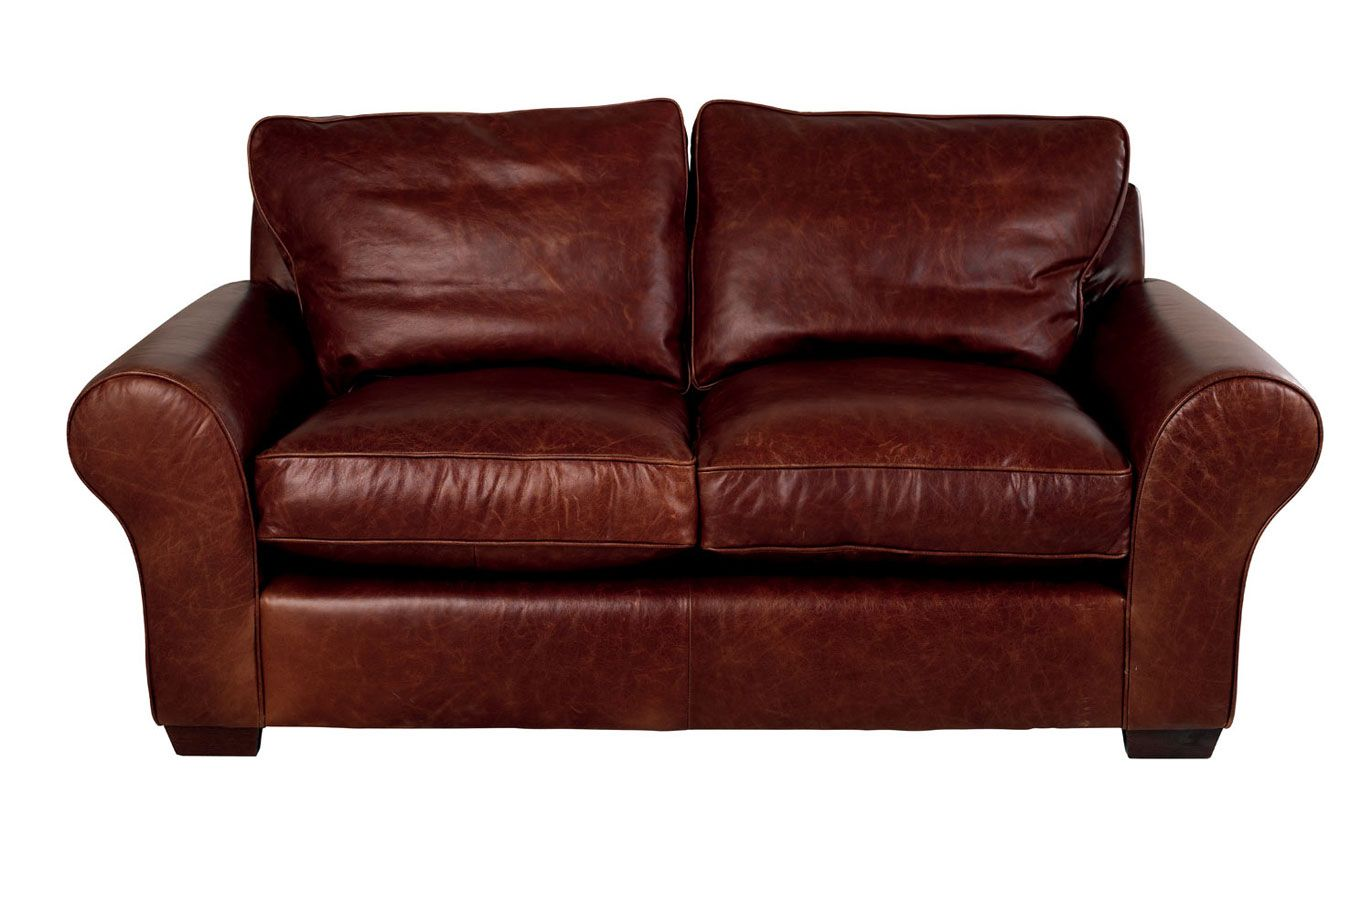 laura ashley burlington leather sofa george nelson bed brown corner